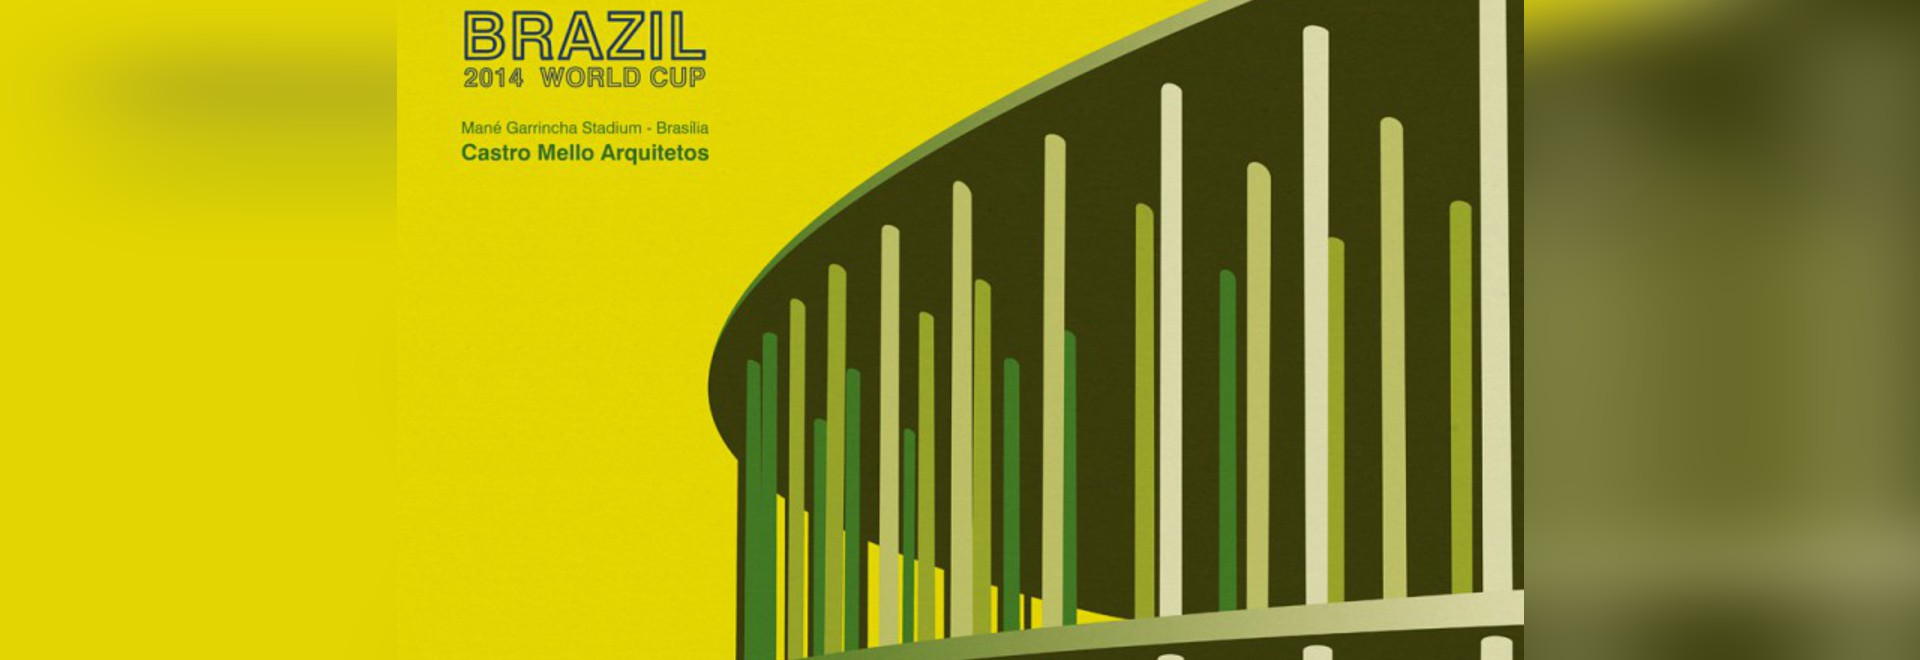 ARCHITECTURE BRAZIL BY ANDRÉ CHIOTE